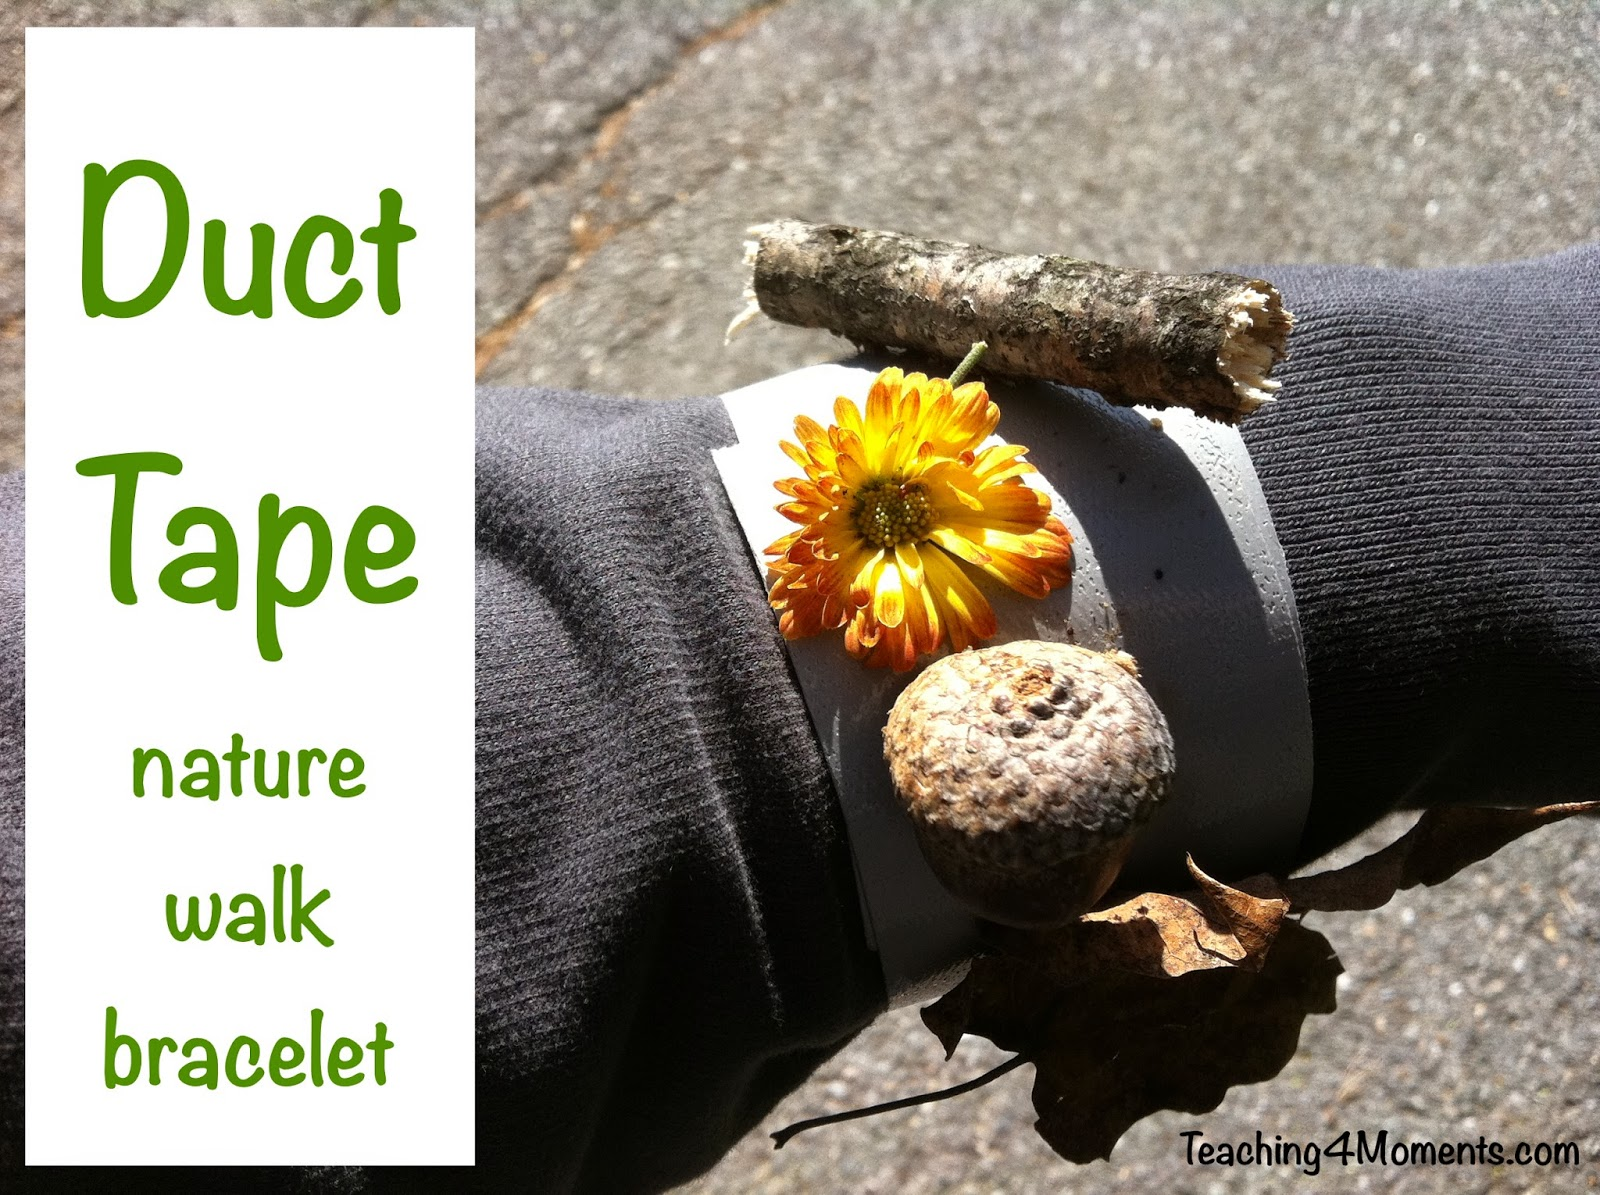 Teaching 4 Moments-Duct tape bracelet for nature walks